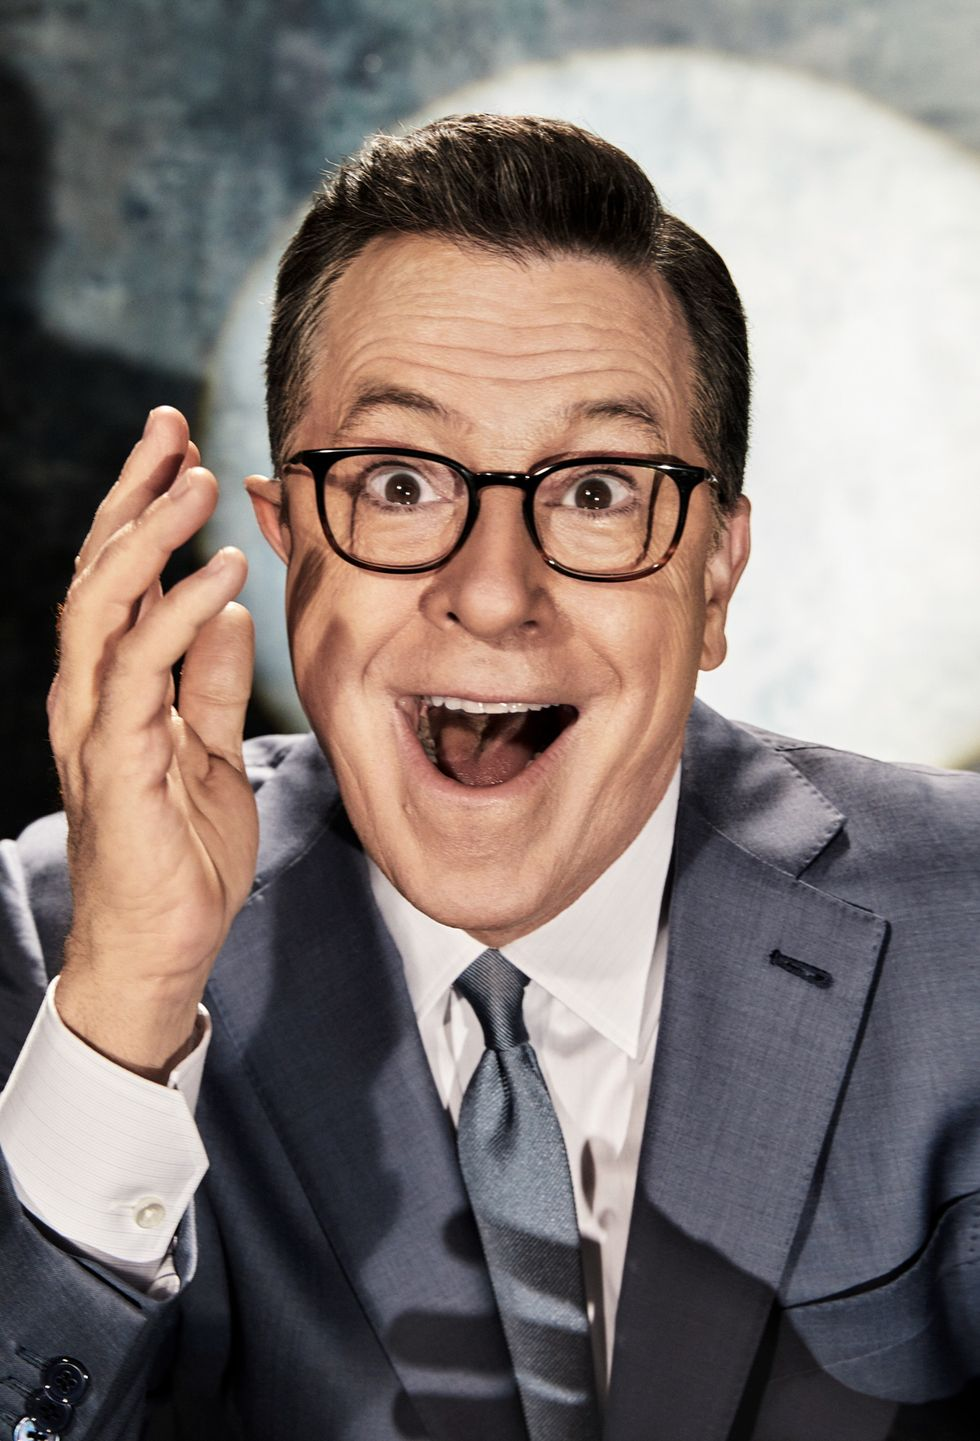 Close-up portrait of Stephen Colbert making expressive face.